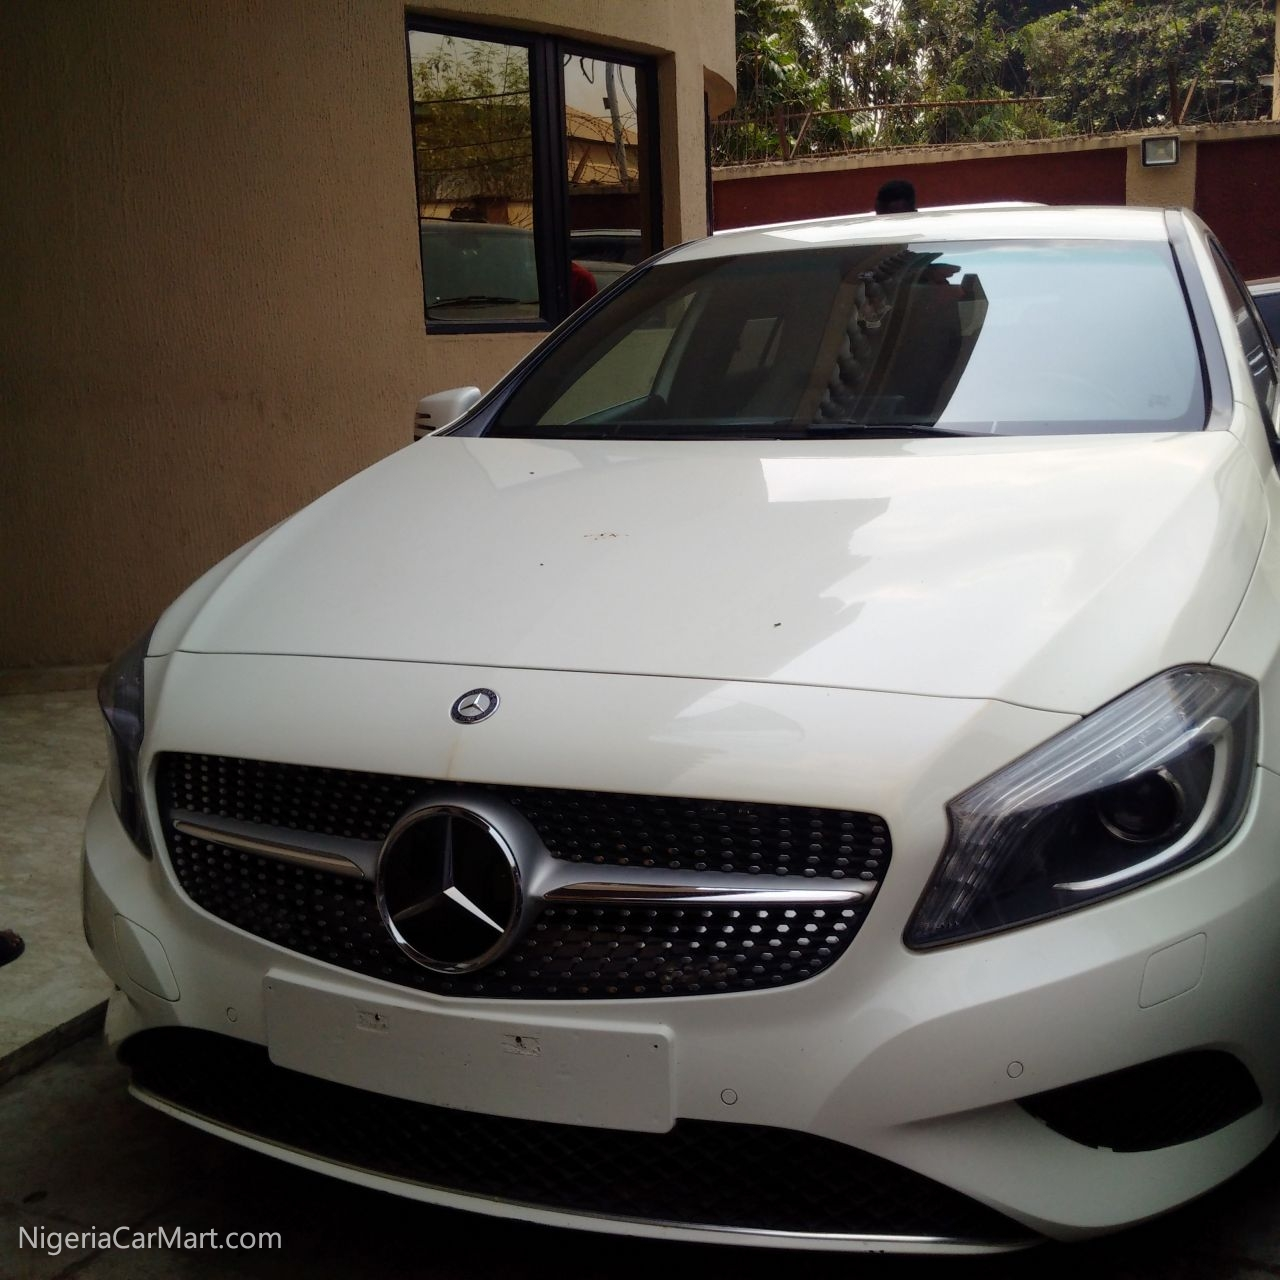 2015 Mercedes Benz C250 Used Car For Sale In Lagos Nigeria